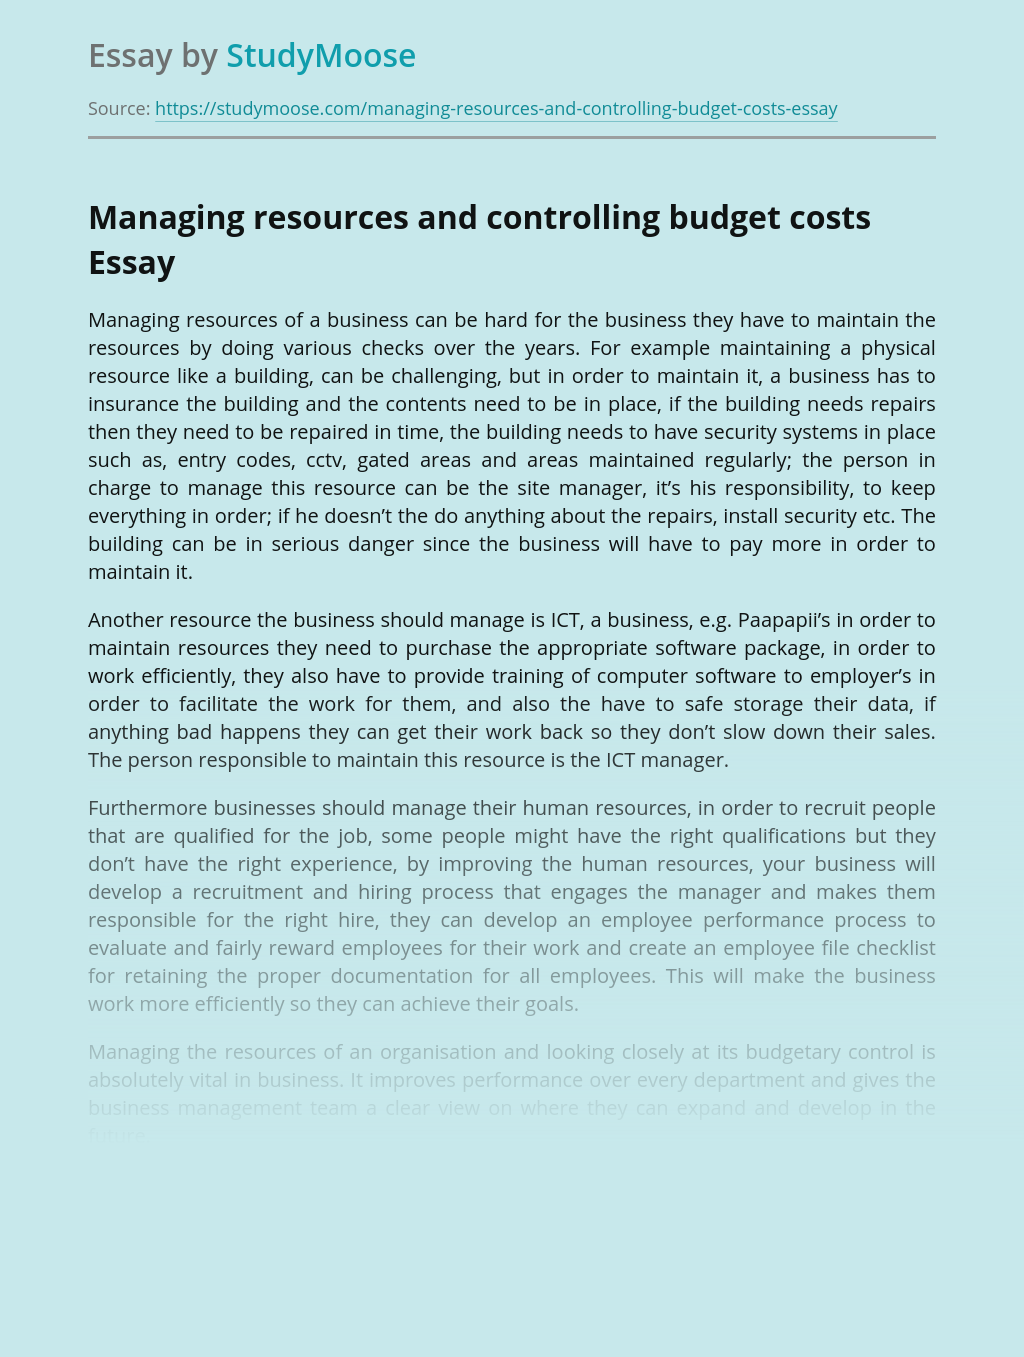 Managing resources and controlling budget costs